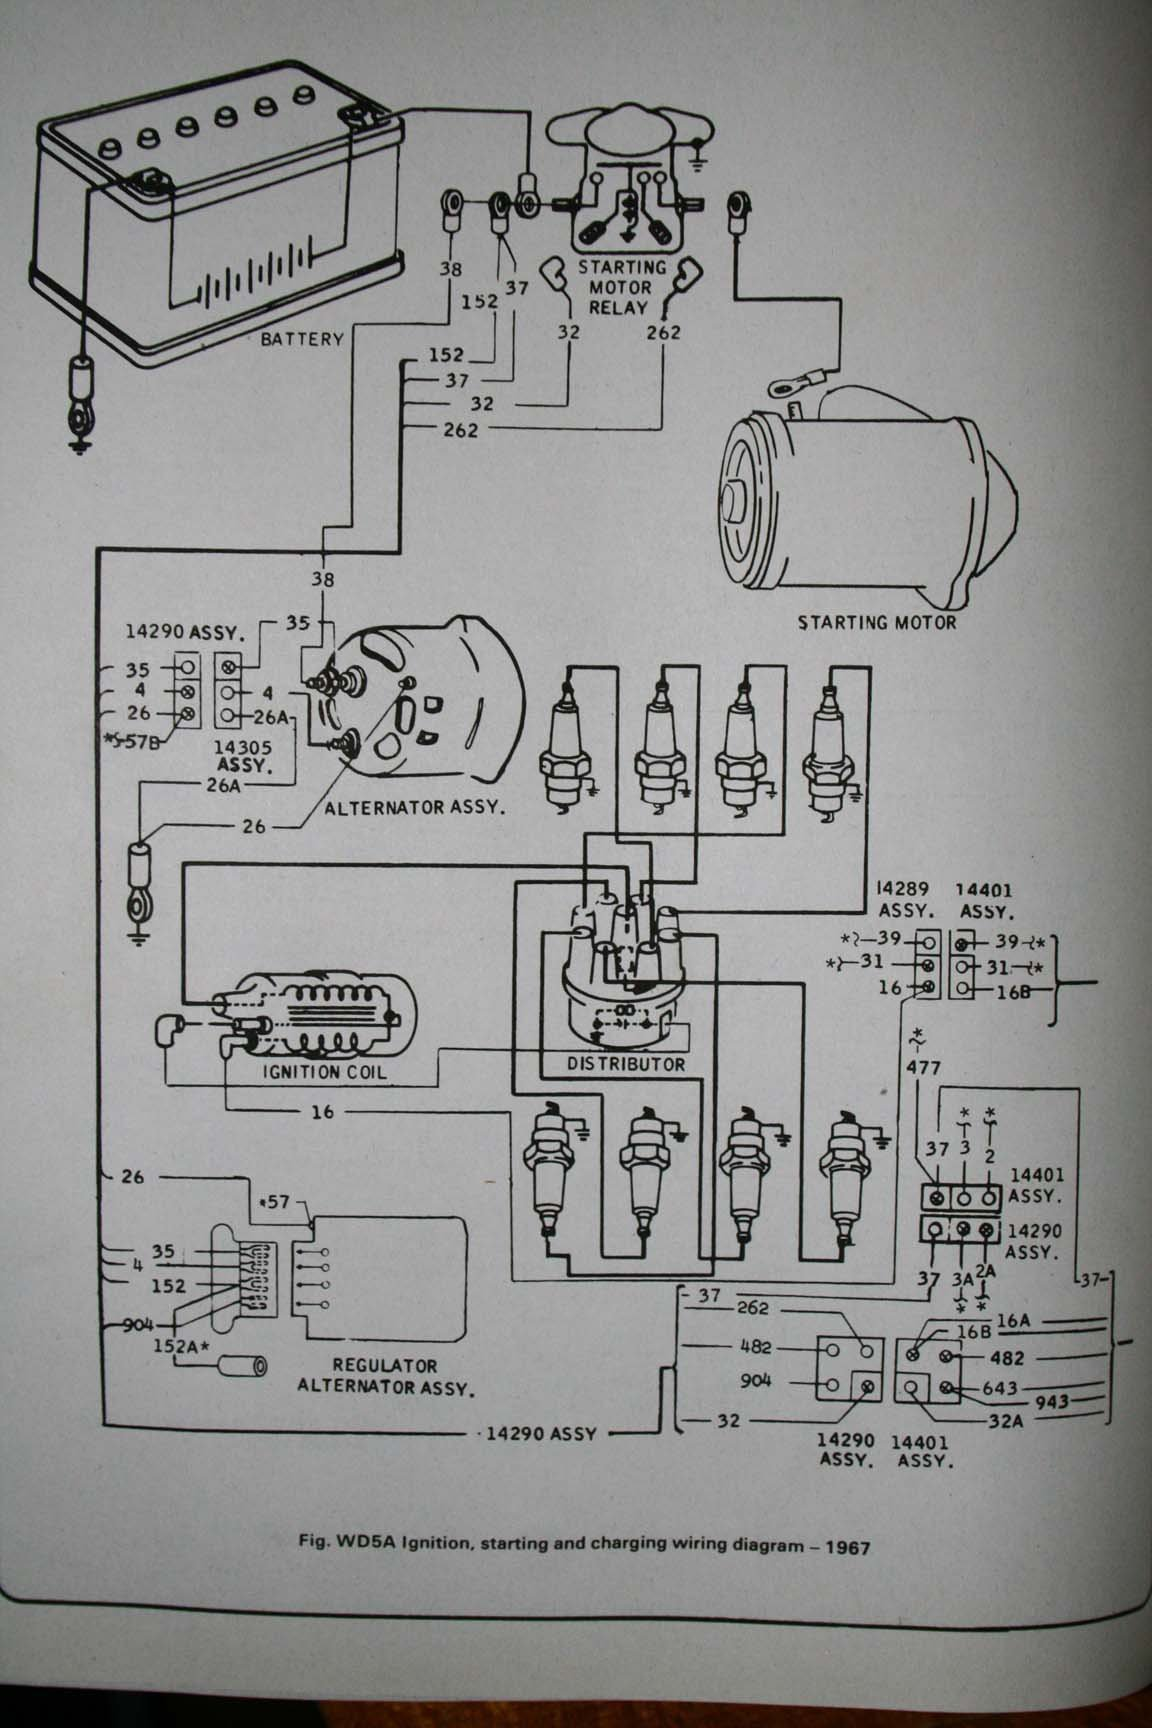 hight resolution of 1967 ford alternator wiring wiring diagram source 67 mustang alternator wiring free download wiring diagram schematic